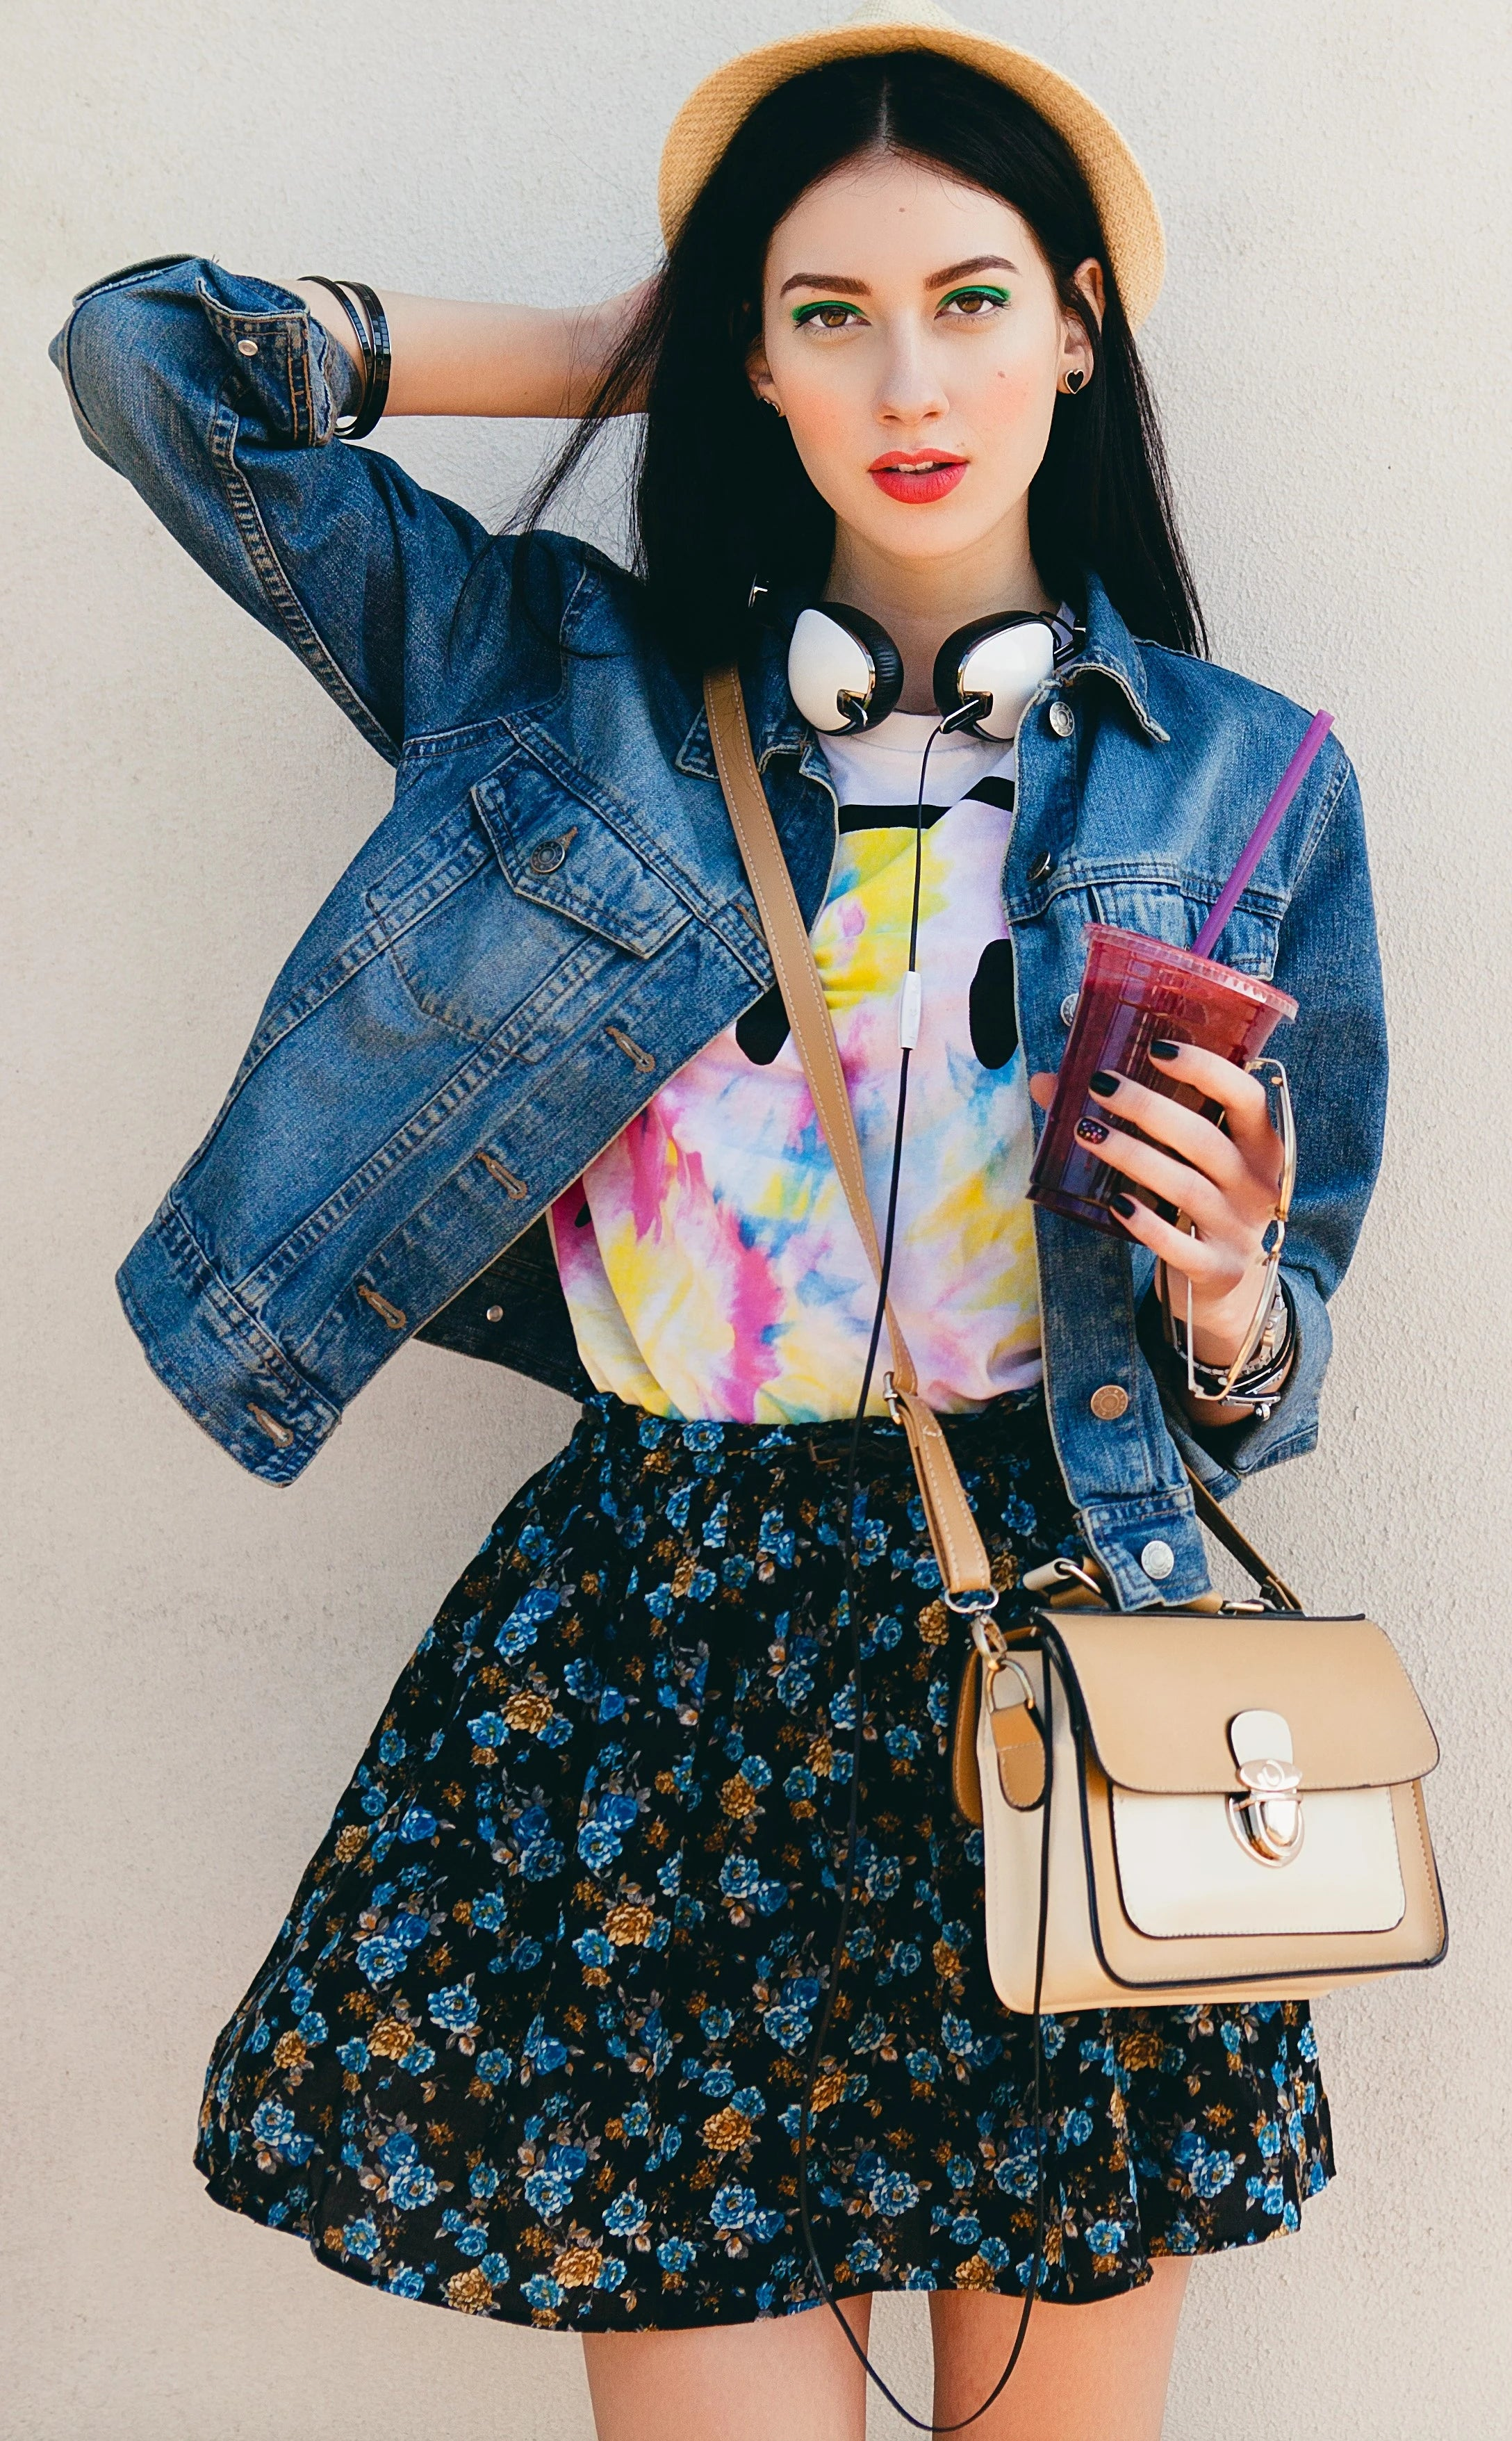 Watercolour and floral pattern mix with denim jacket